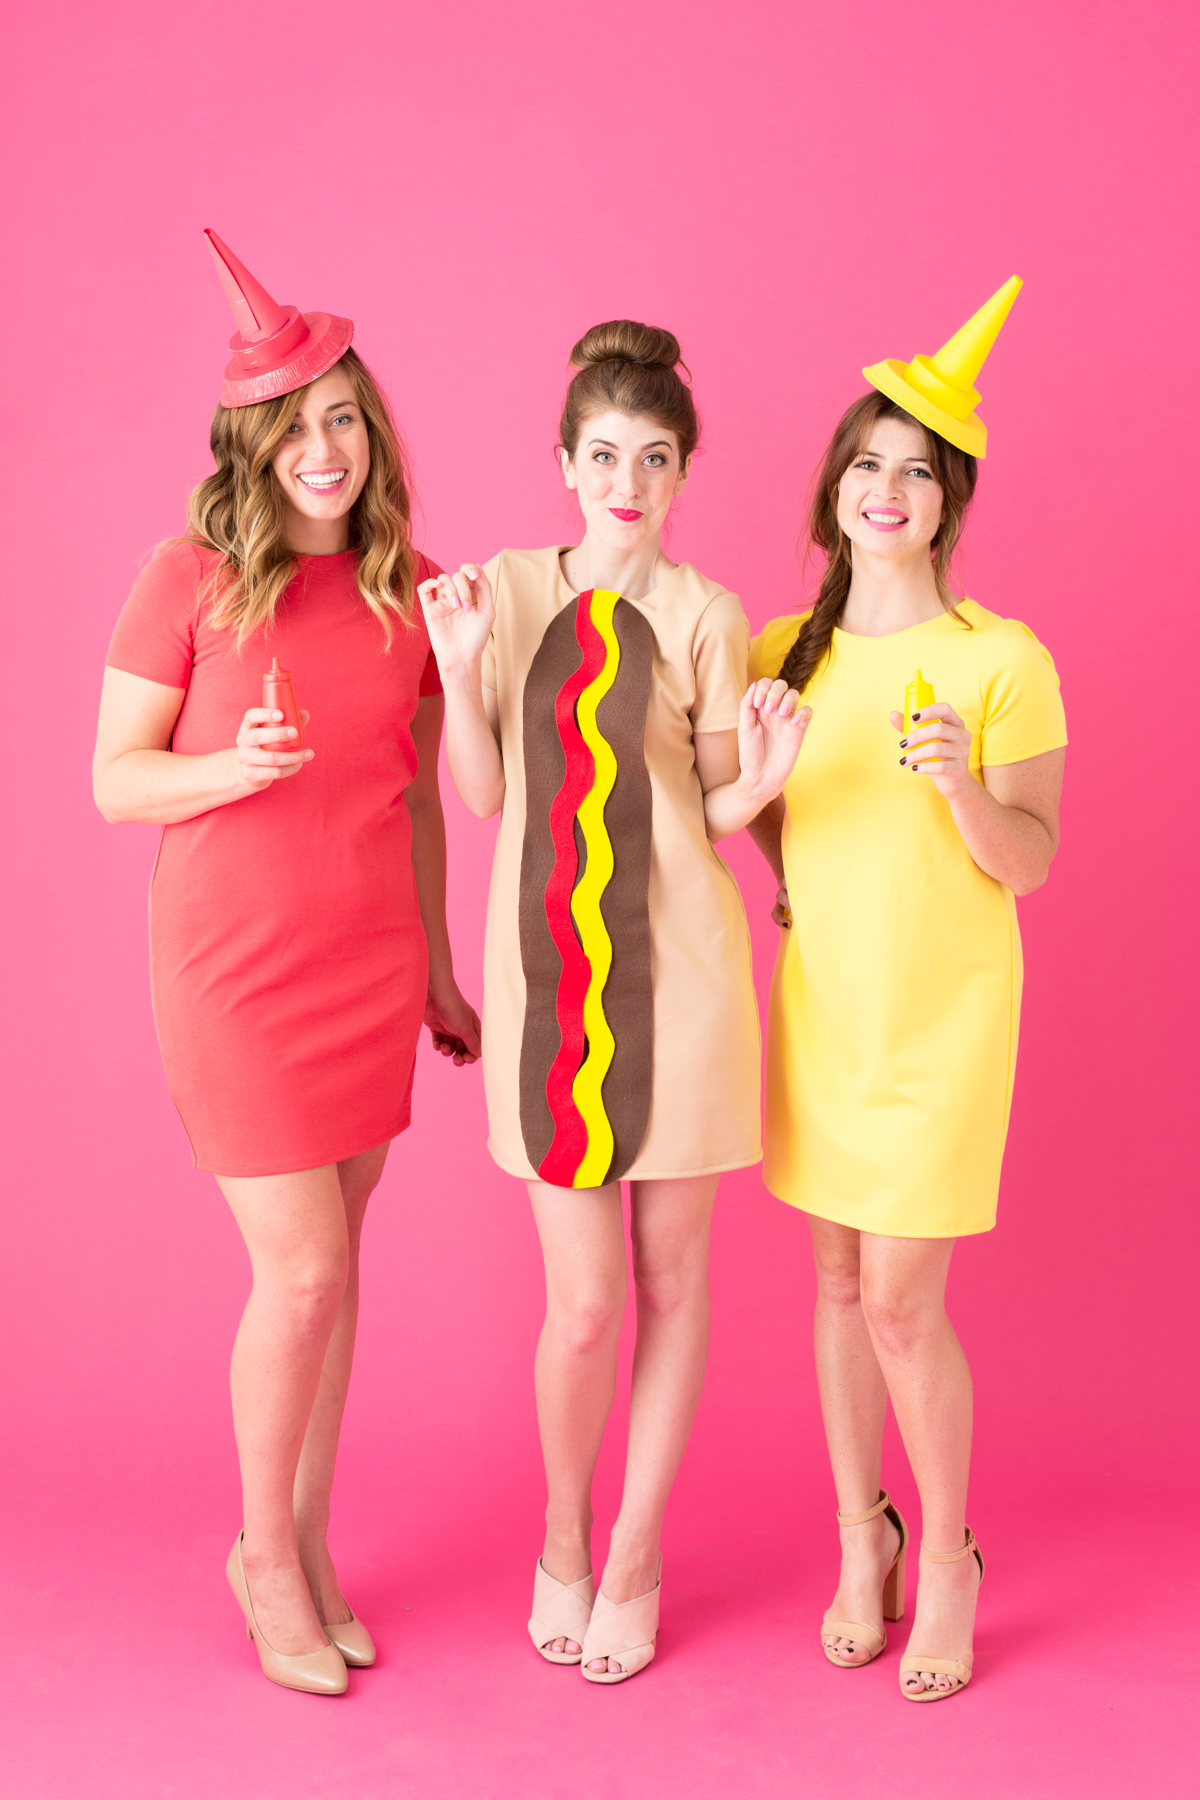 diy hot dog costume last chance for free shipping. Black Bedroom Furniture Sets. Home Design Ideas